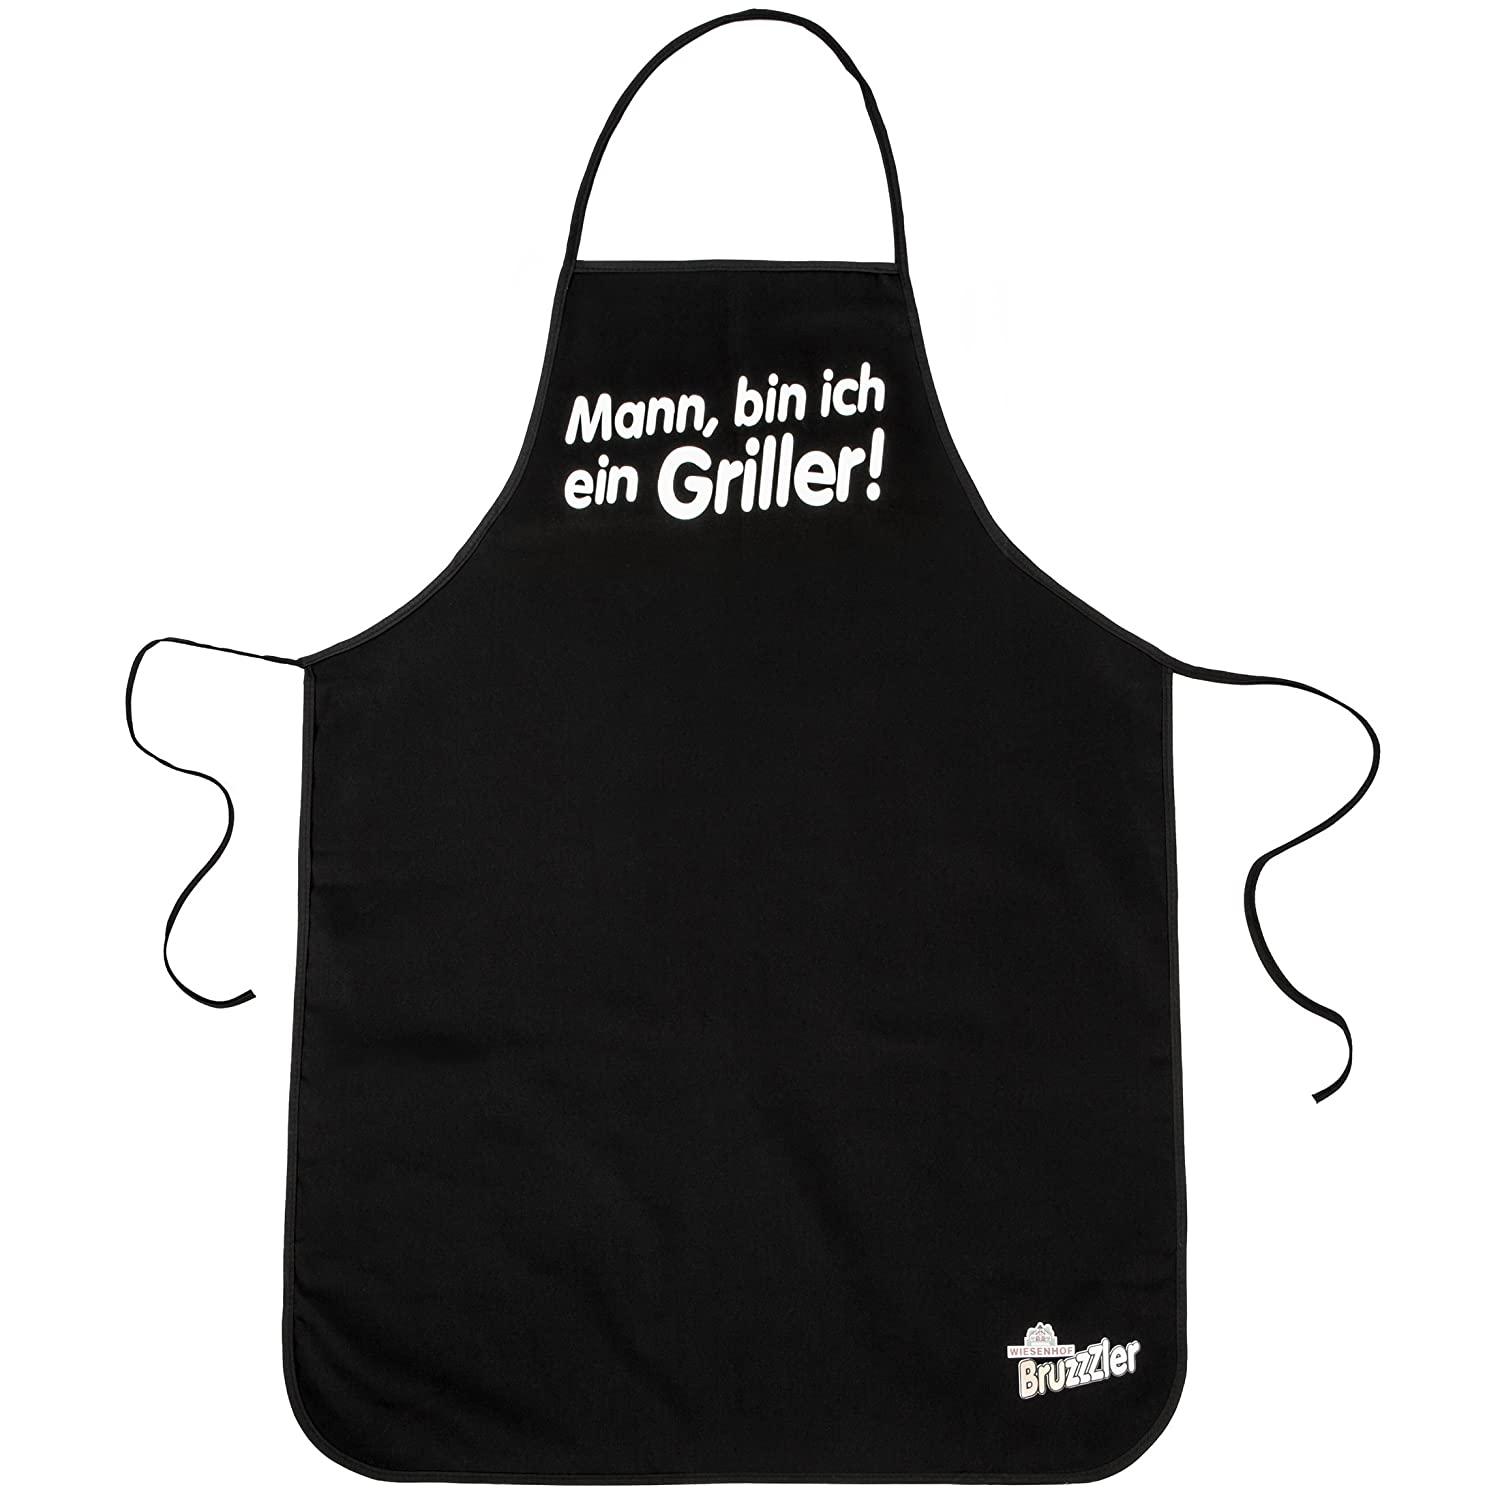 Bruzzzler Apron with Print 200100001083